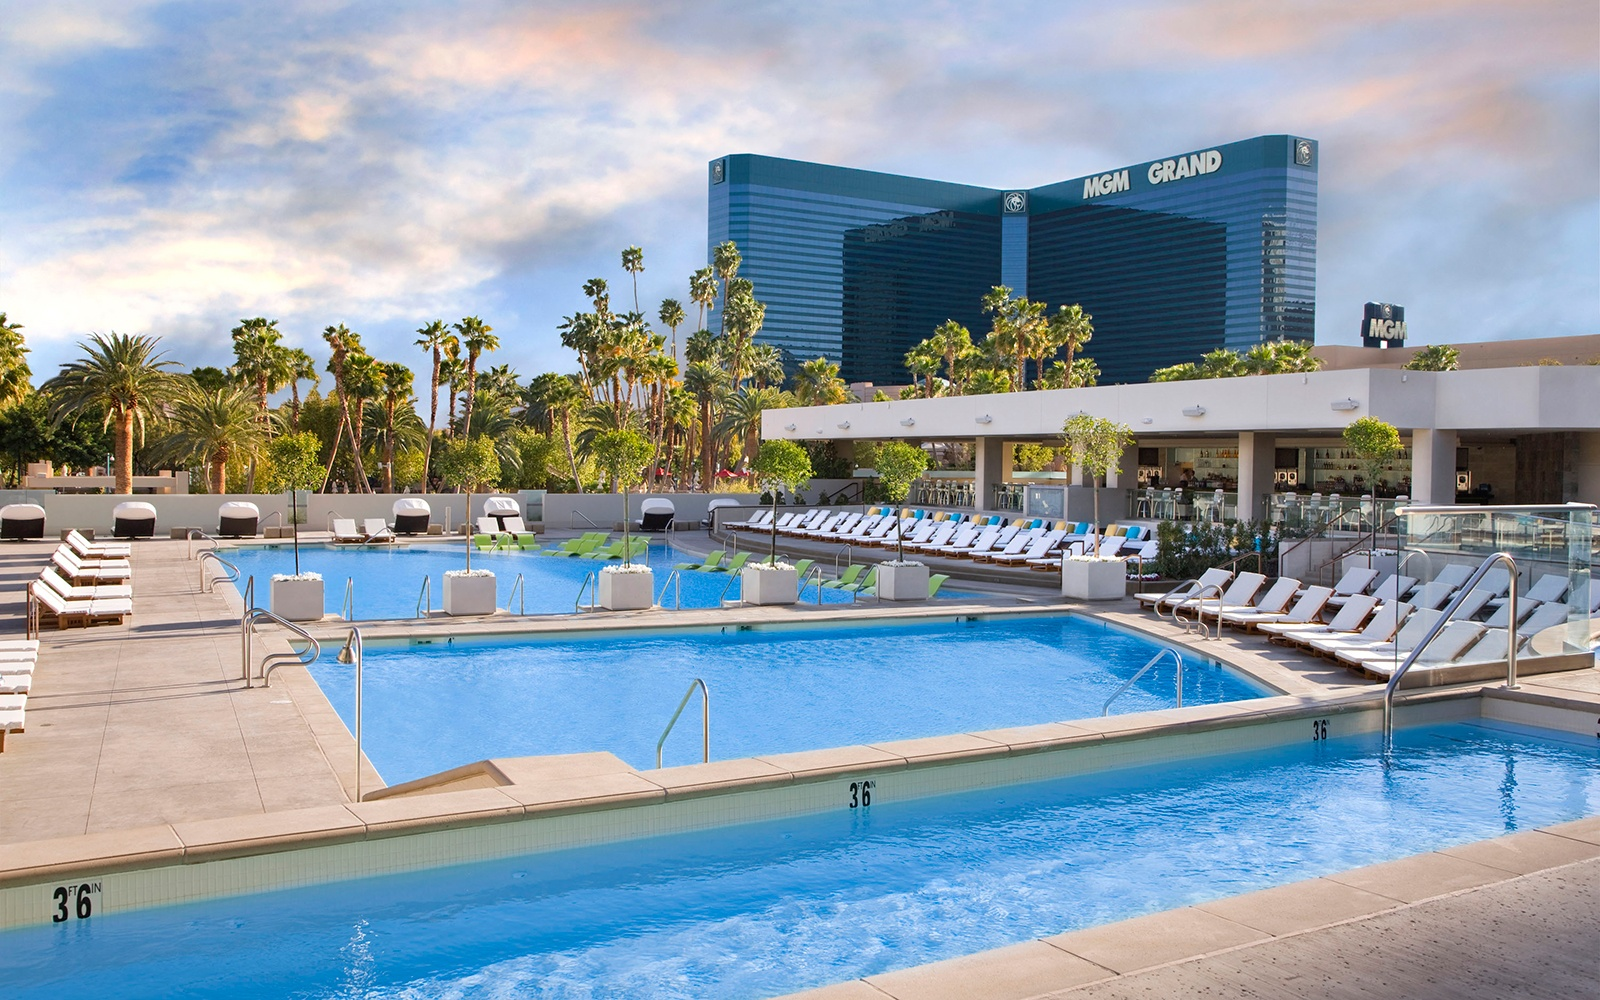 Wet Republic Mgm Grand Vegas 39 Best Pools From Dayclubs To Djs Travel Leisure